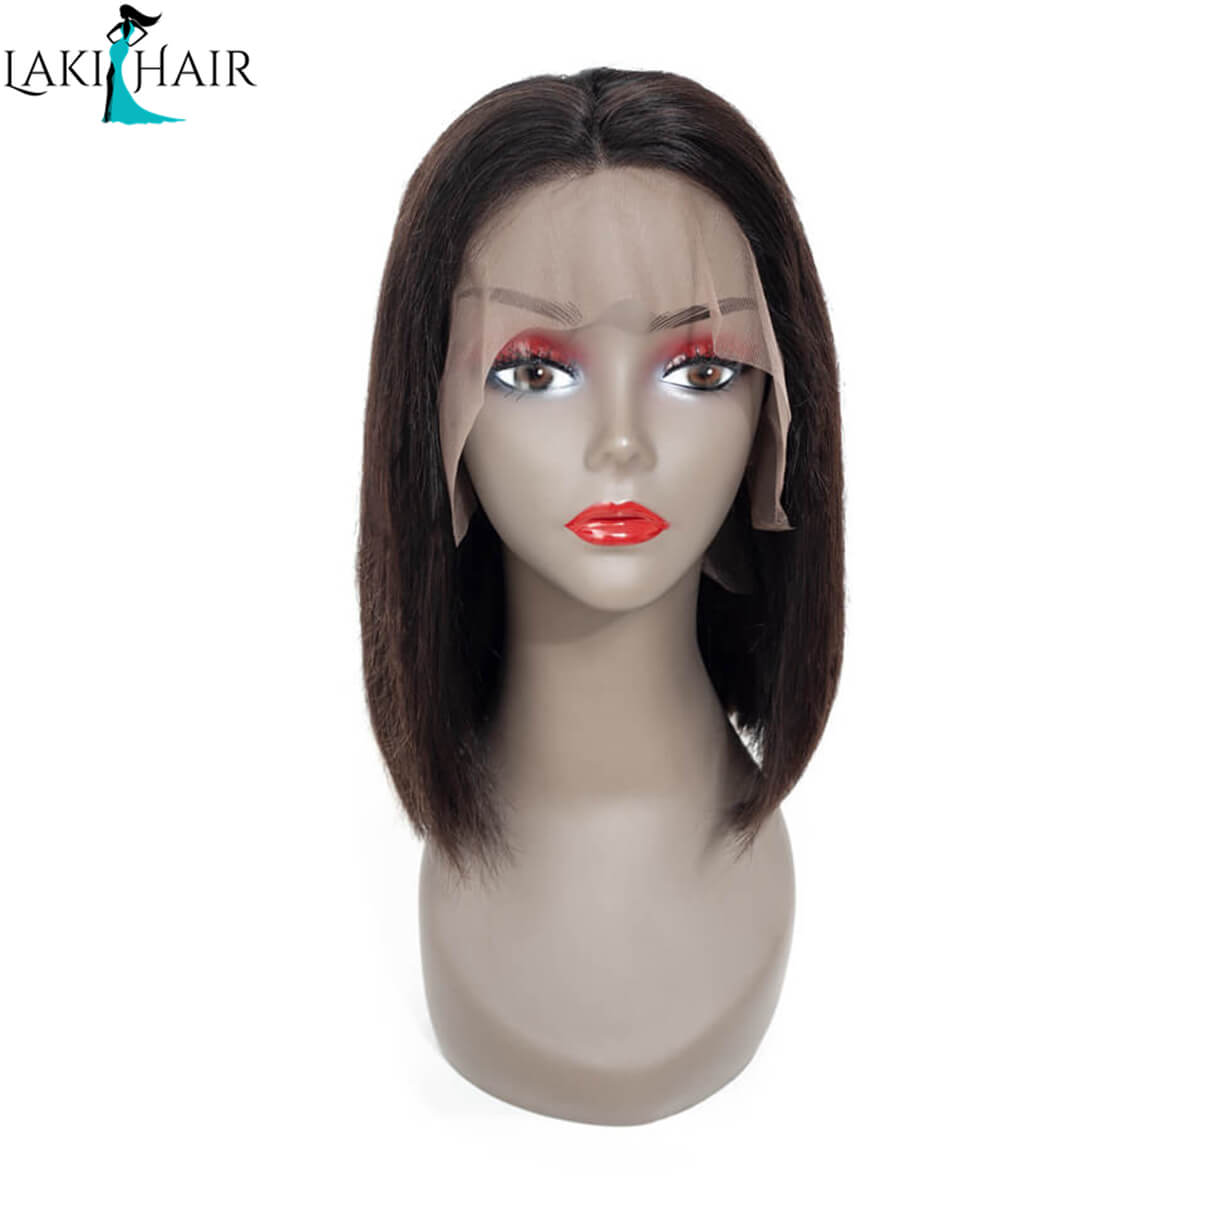 Lakihair Short Lace Front Human Hair Wigs Virgin Brazilian Straight Hair Bob Wigs With Pre Plucked Hairline Bleached Knots 180% Density